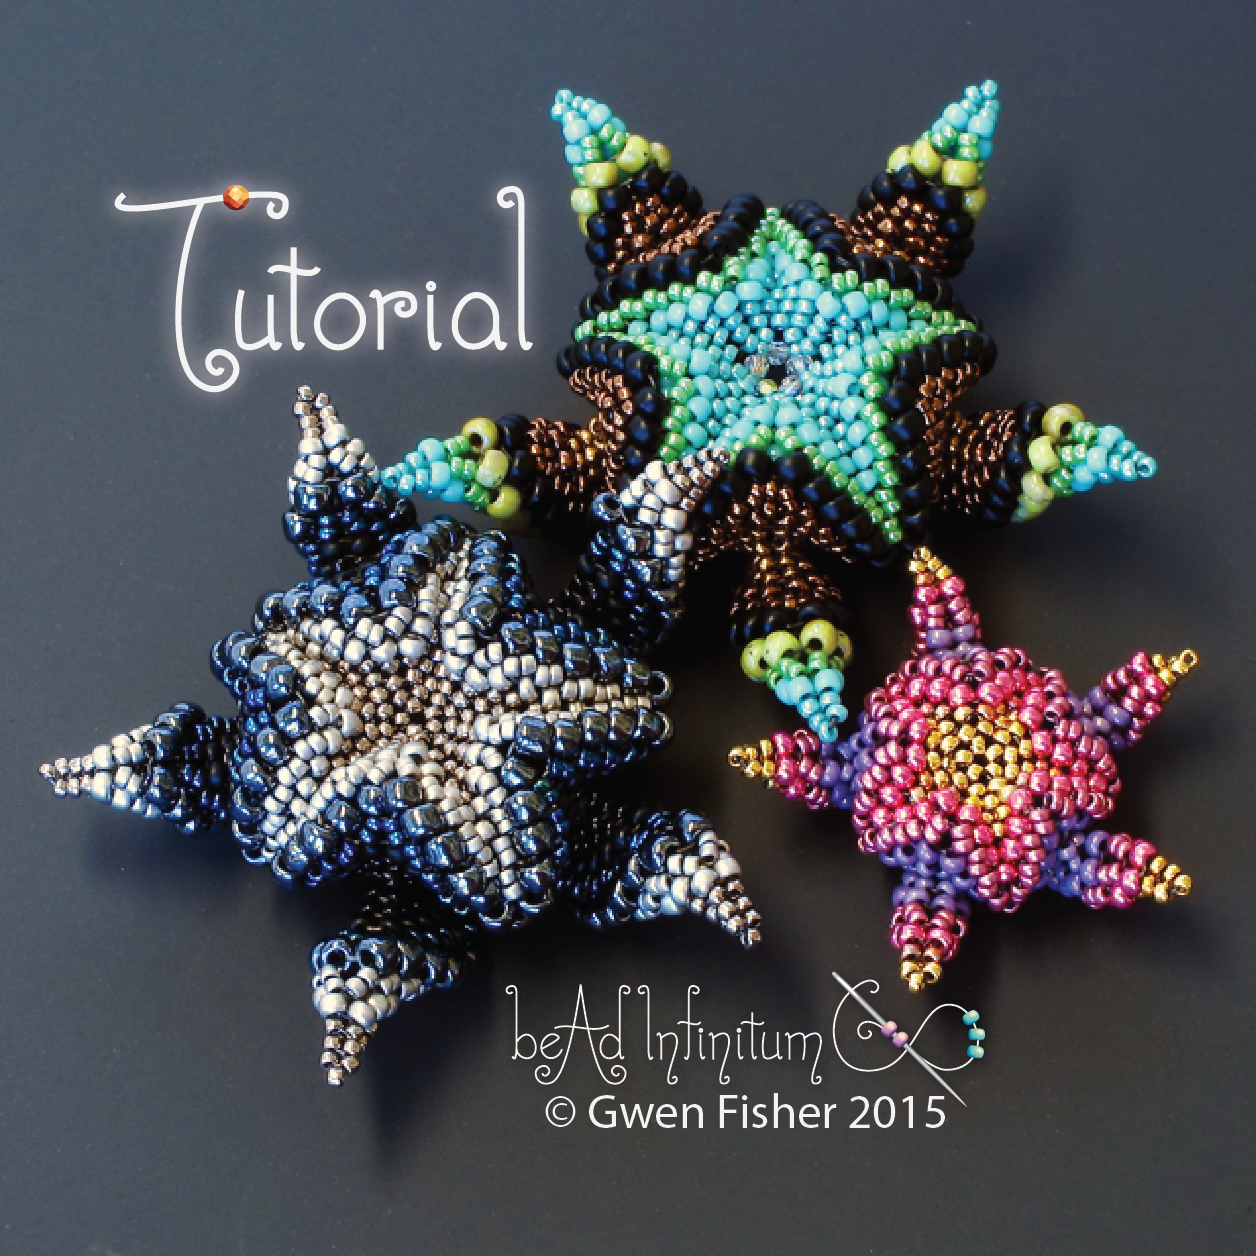 Gwenbeads New Tutorial - Cellini Asterisk Pendants-6830